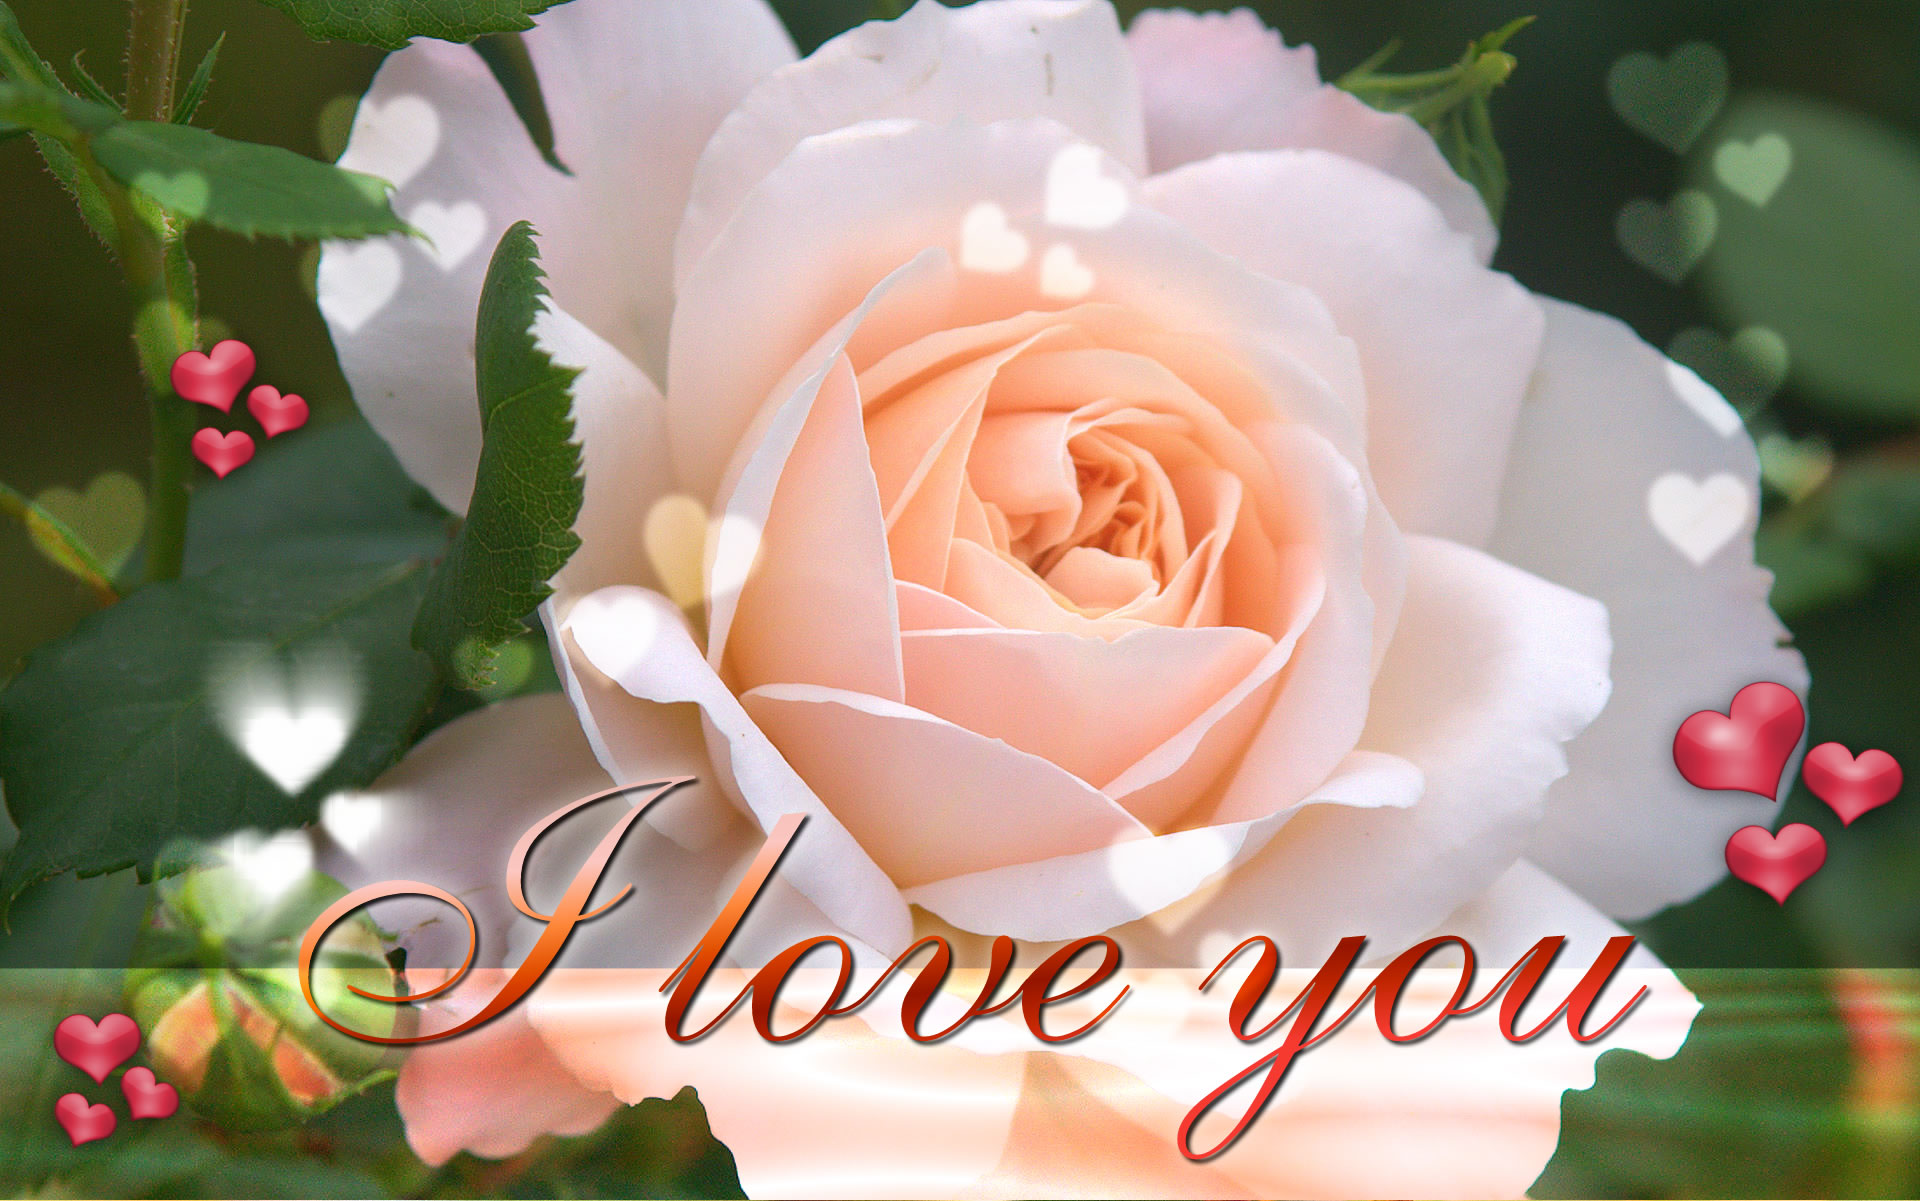 Love You Wallpaper Full Hd : I Love You Hd Wallpaper Download cool HD wallpapers here.